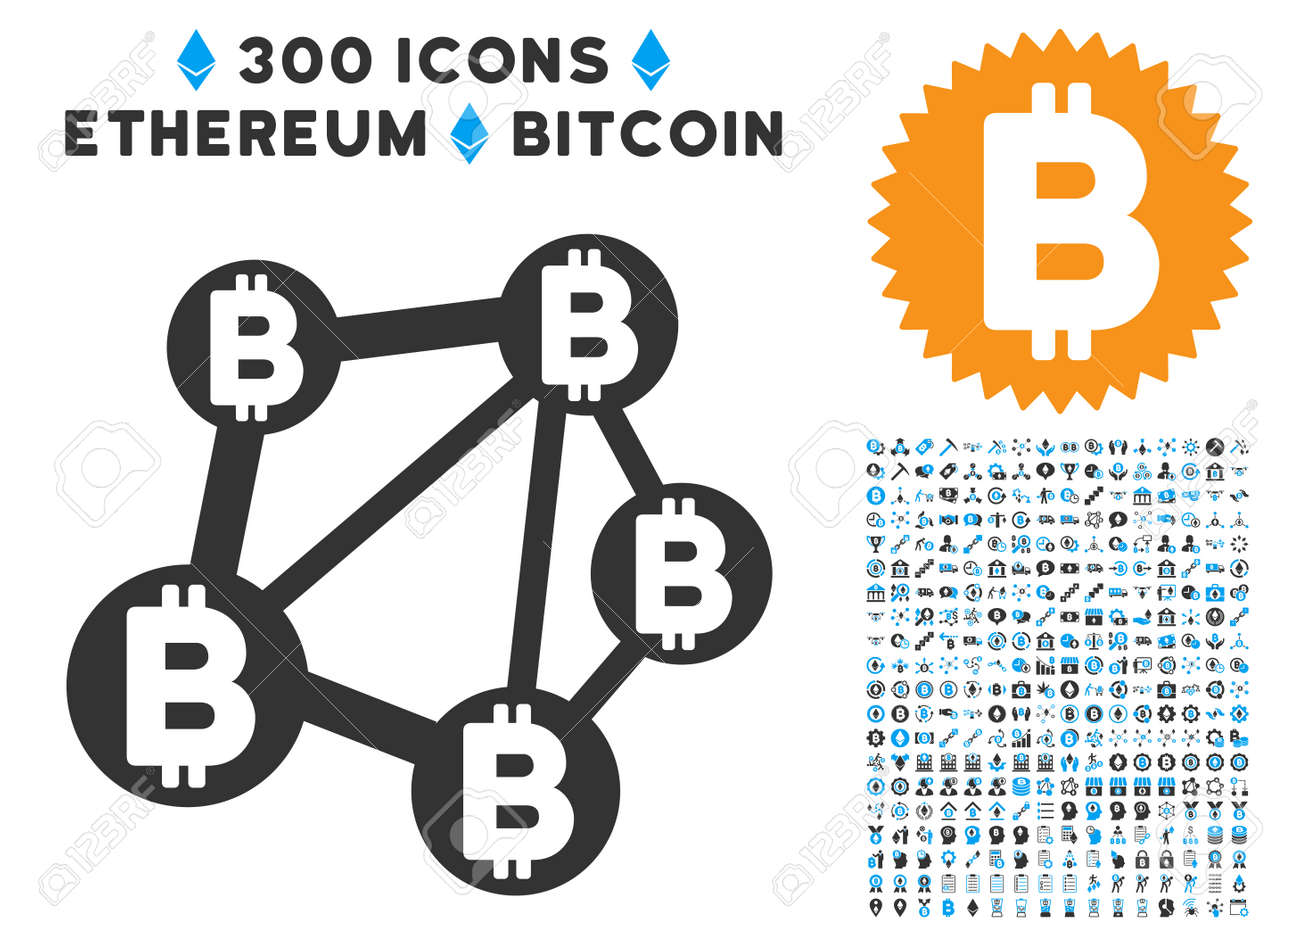 Bitcoin Network Icon With 300 Blockchain Ethereum Smart Contract Images Vector